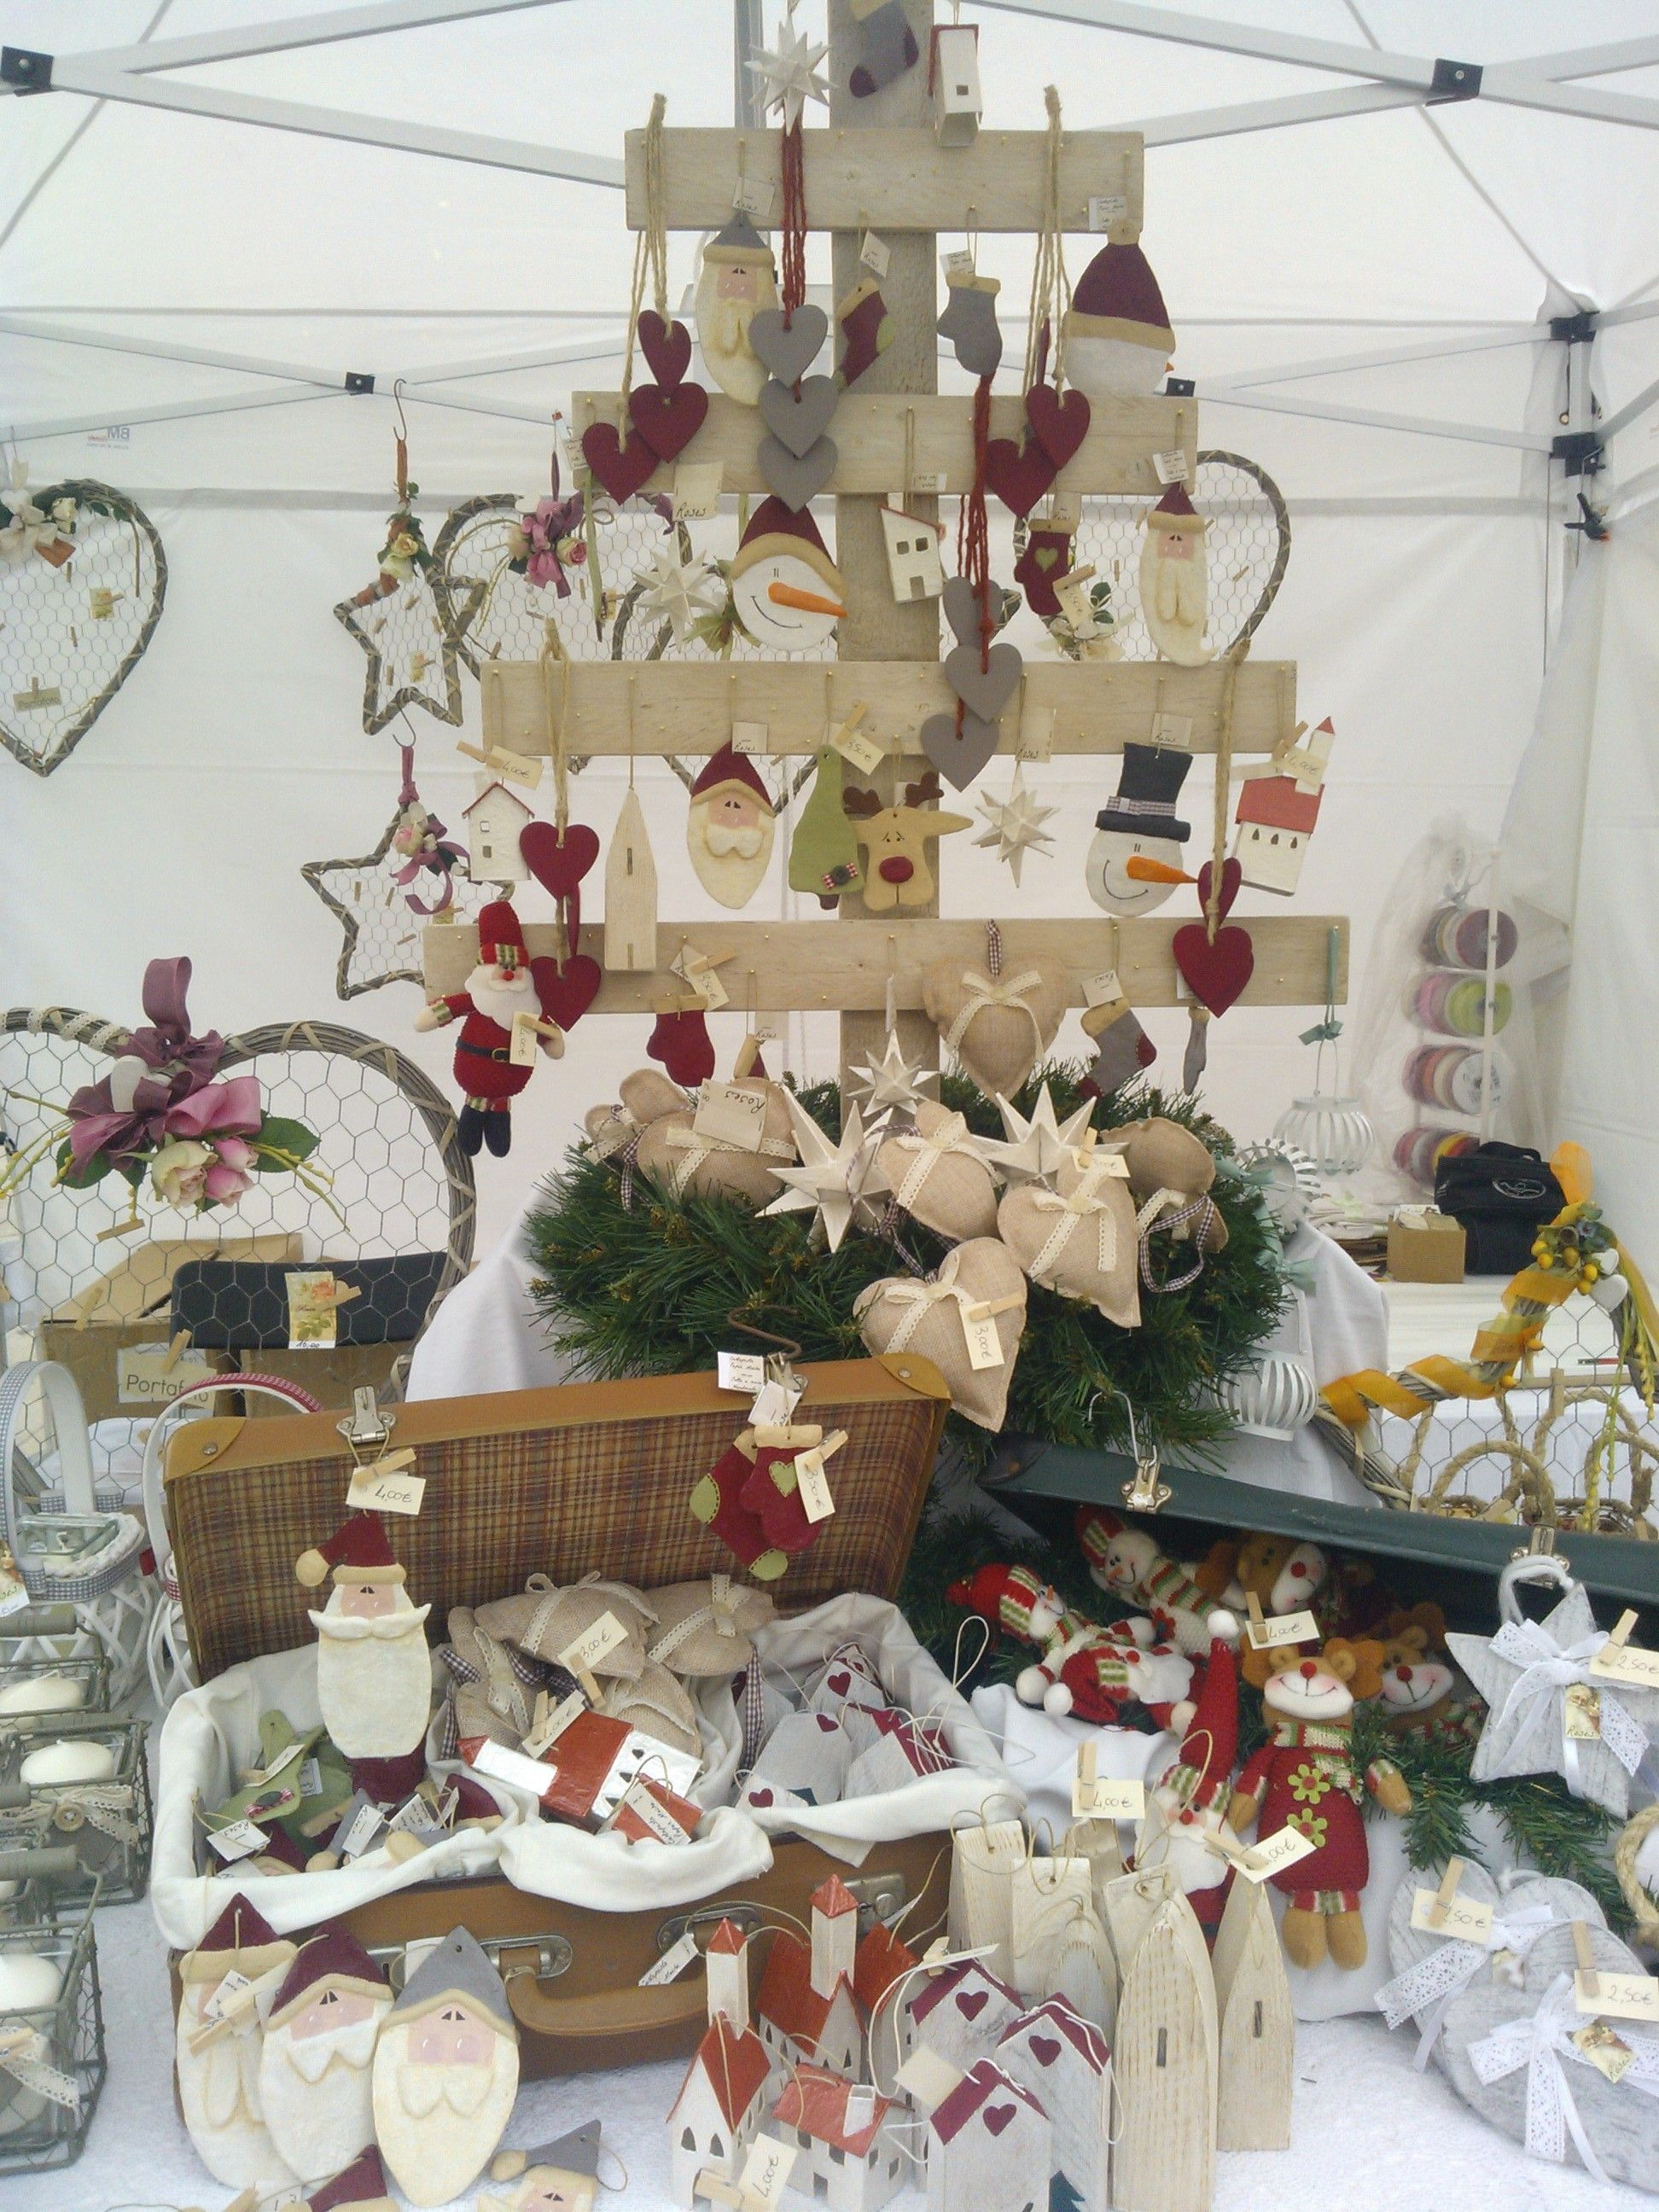 Pin By Mickie Ross On My Style Christmas Craft Show Christmas